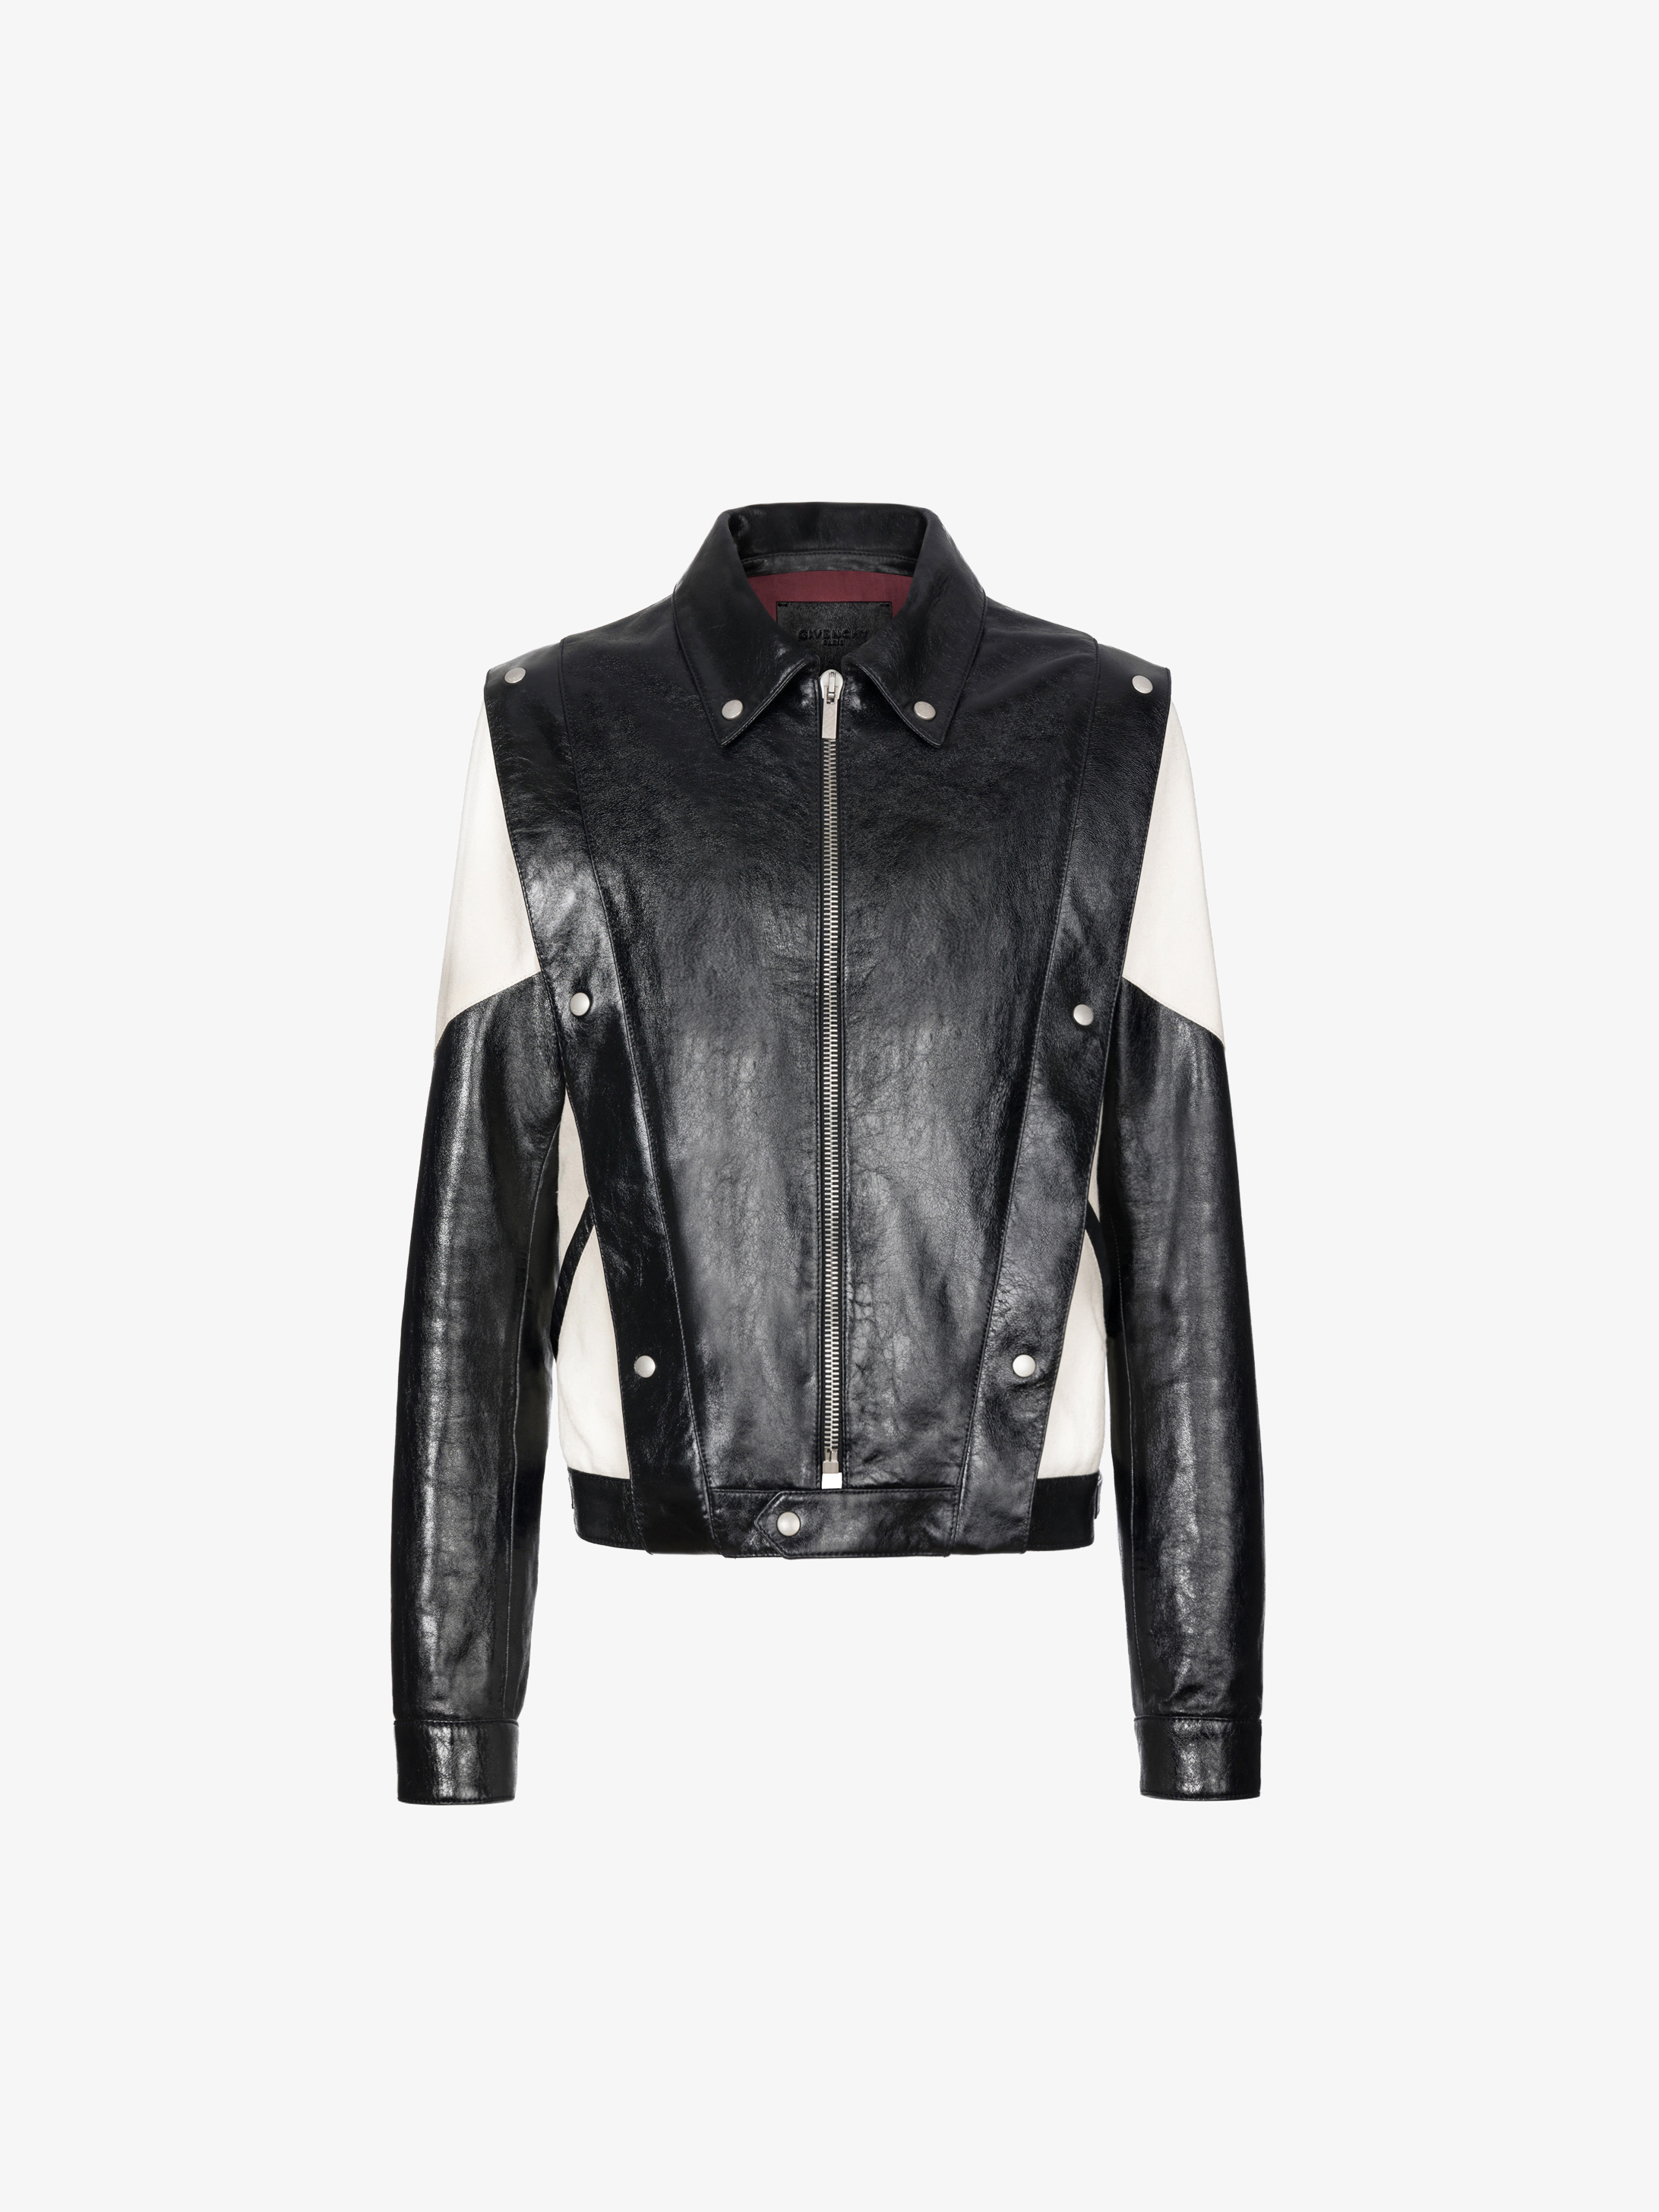 two-toned casual jacket in leather and canvas